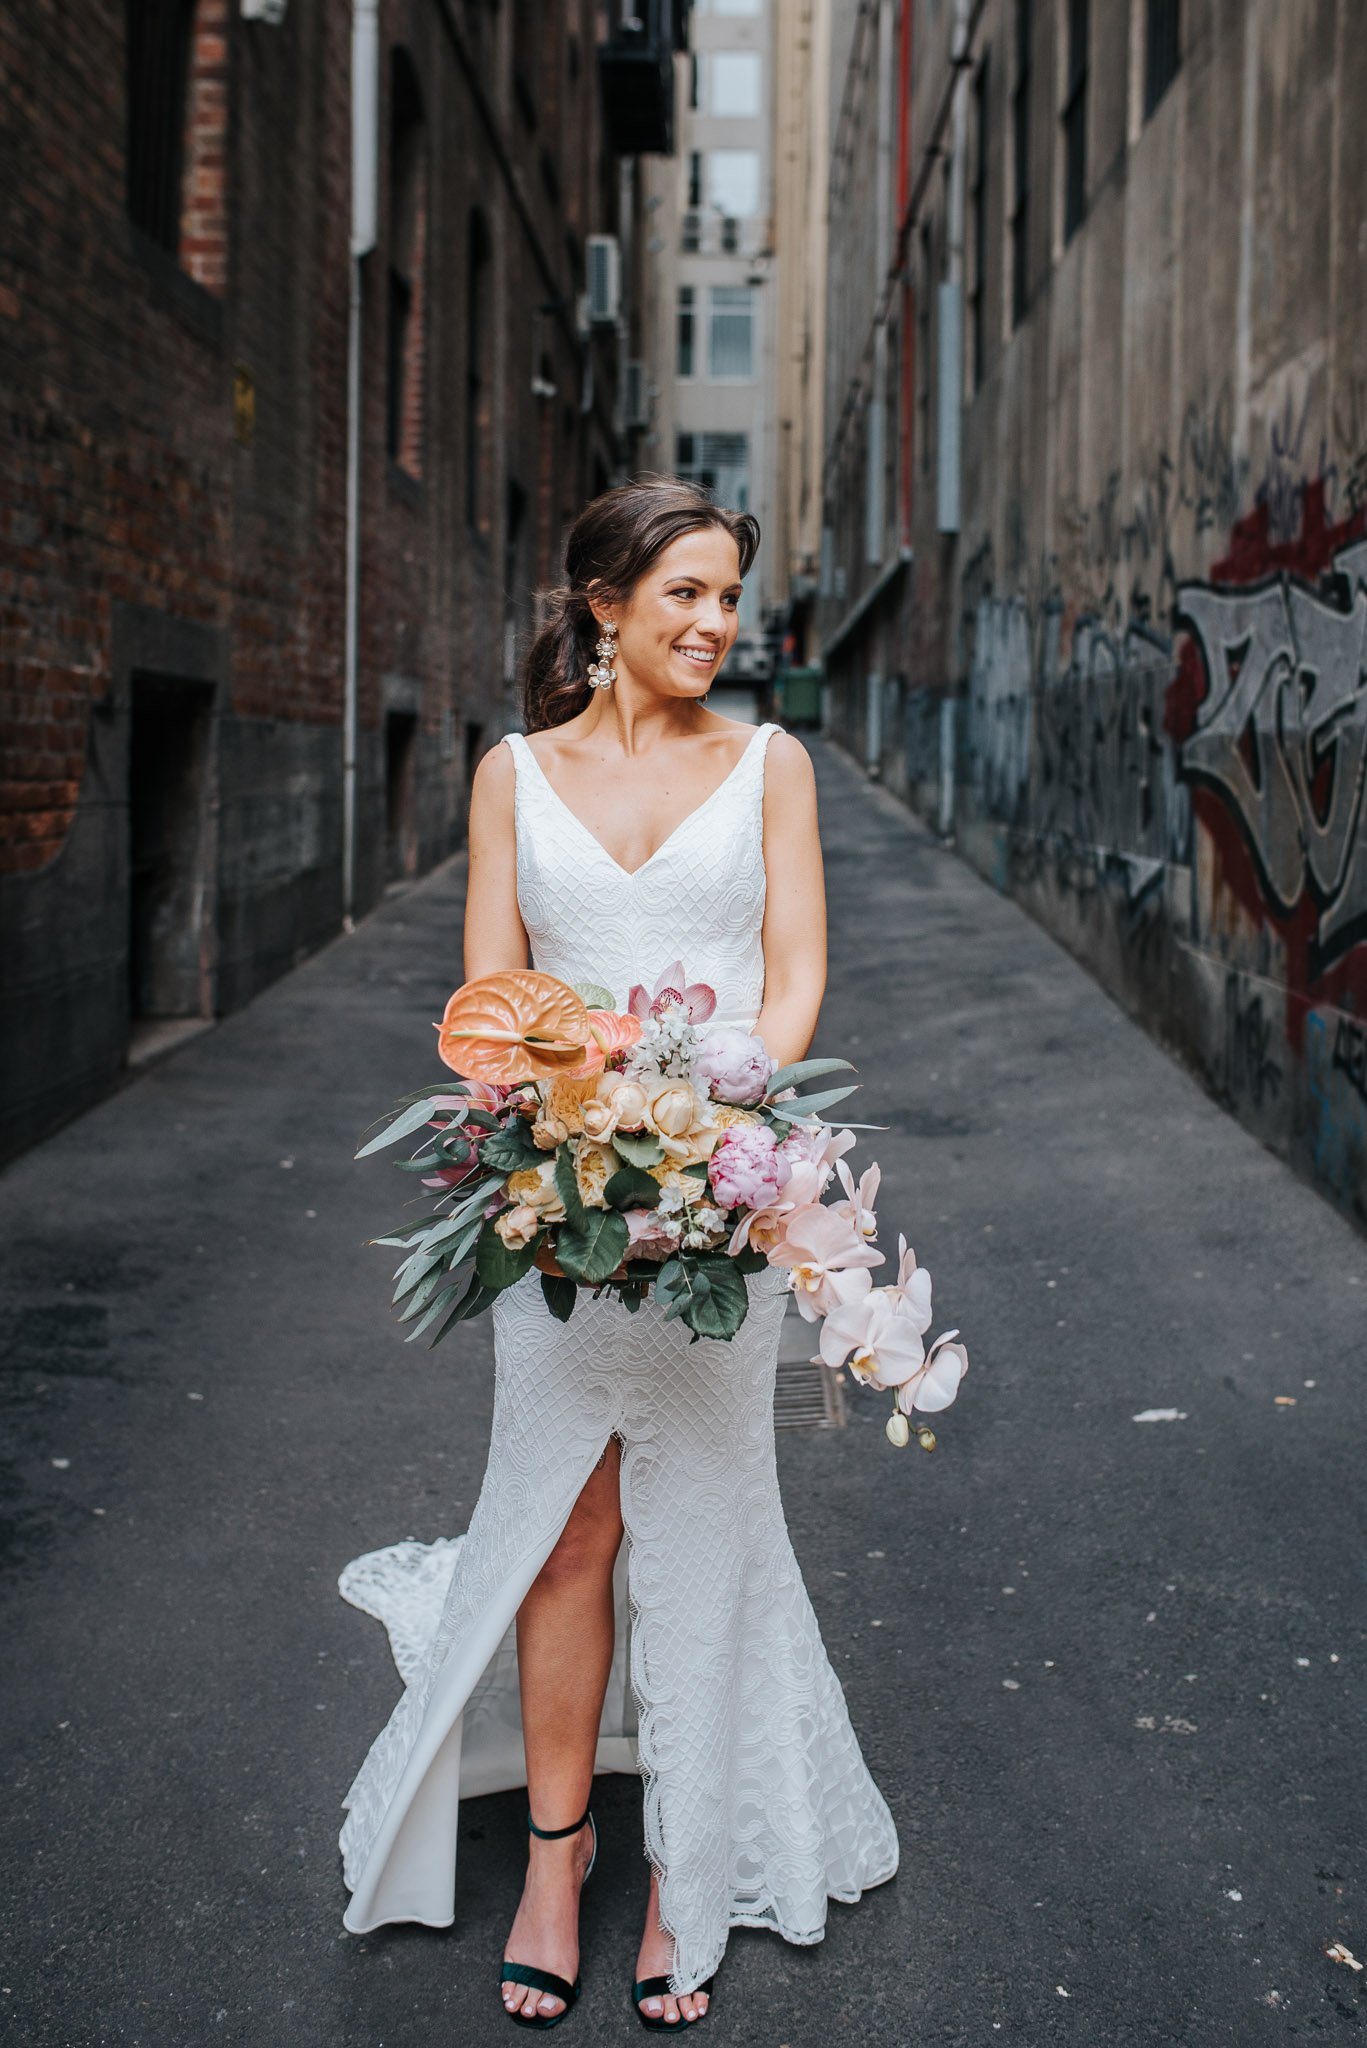 wedding photography inspiration melbourne CBD